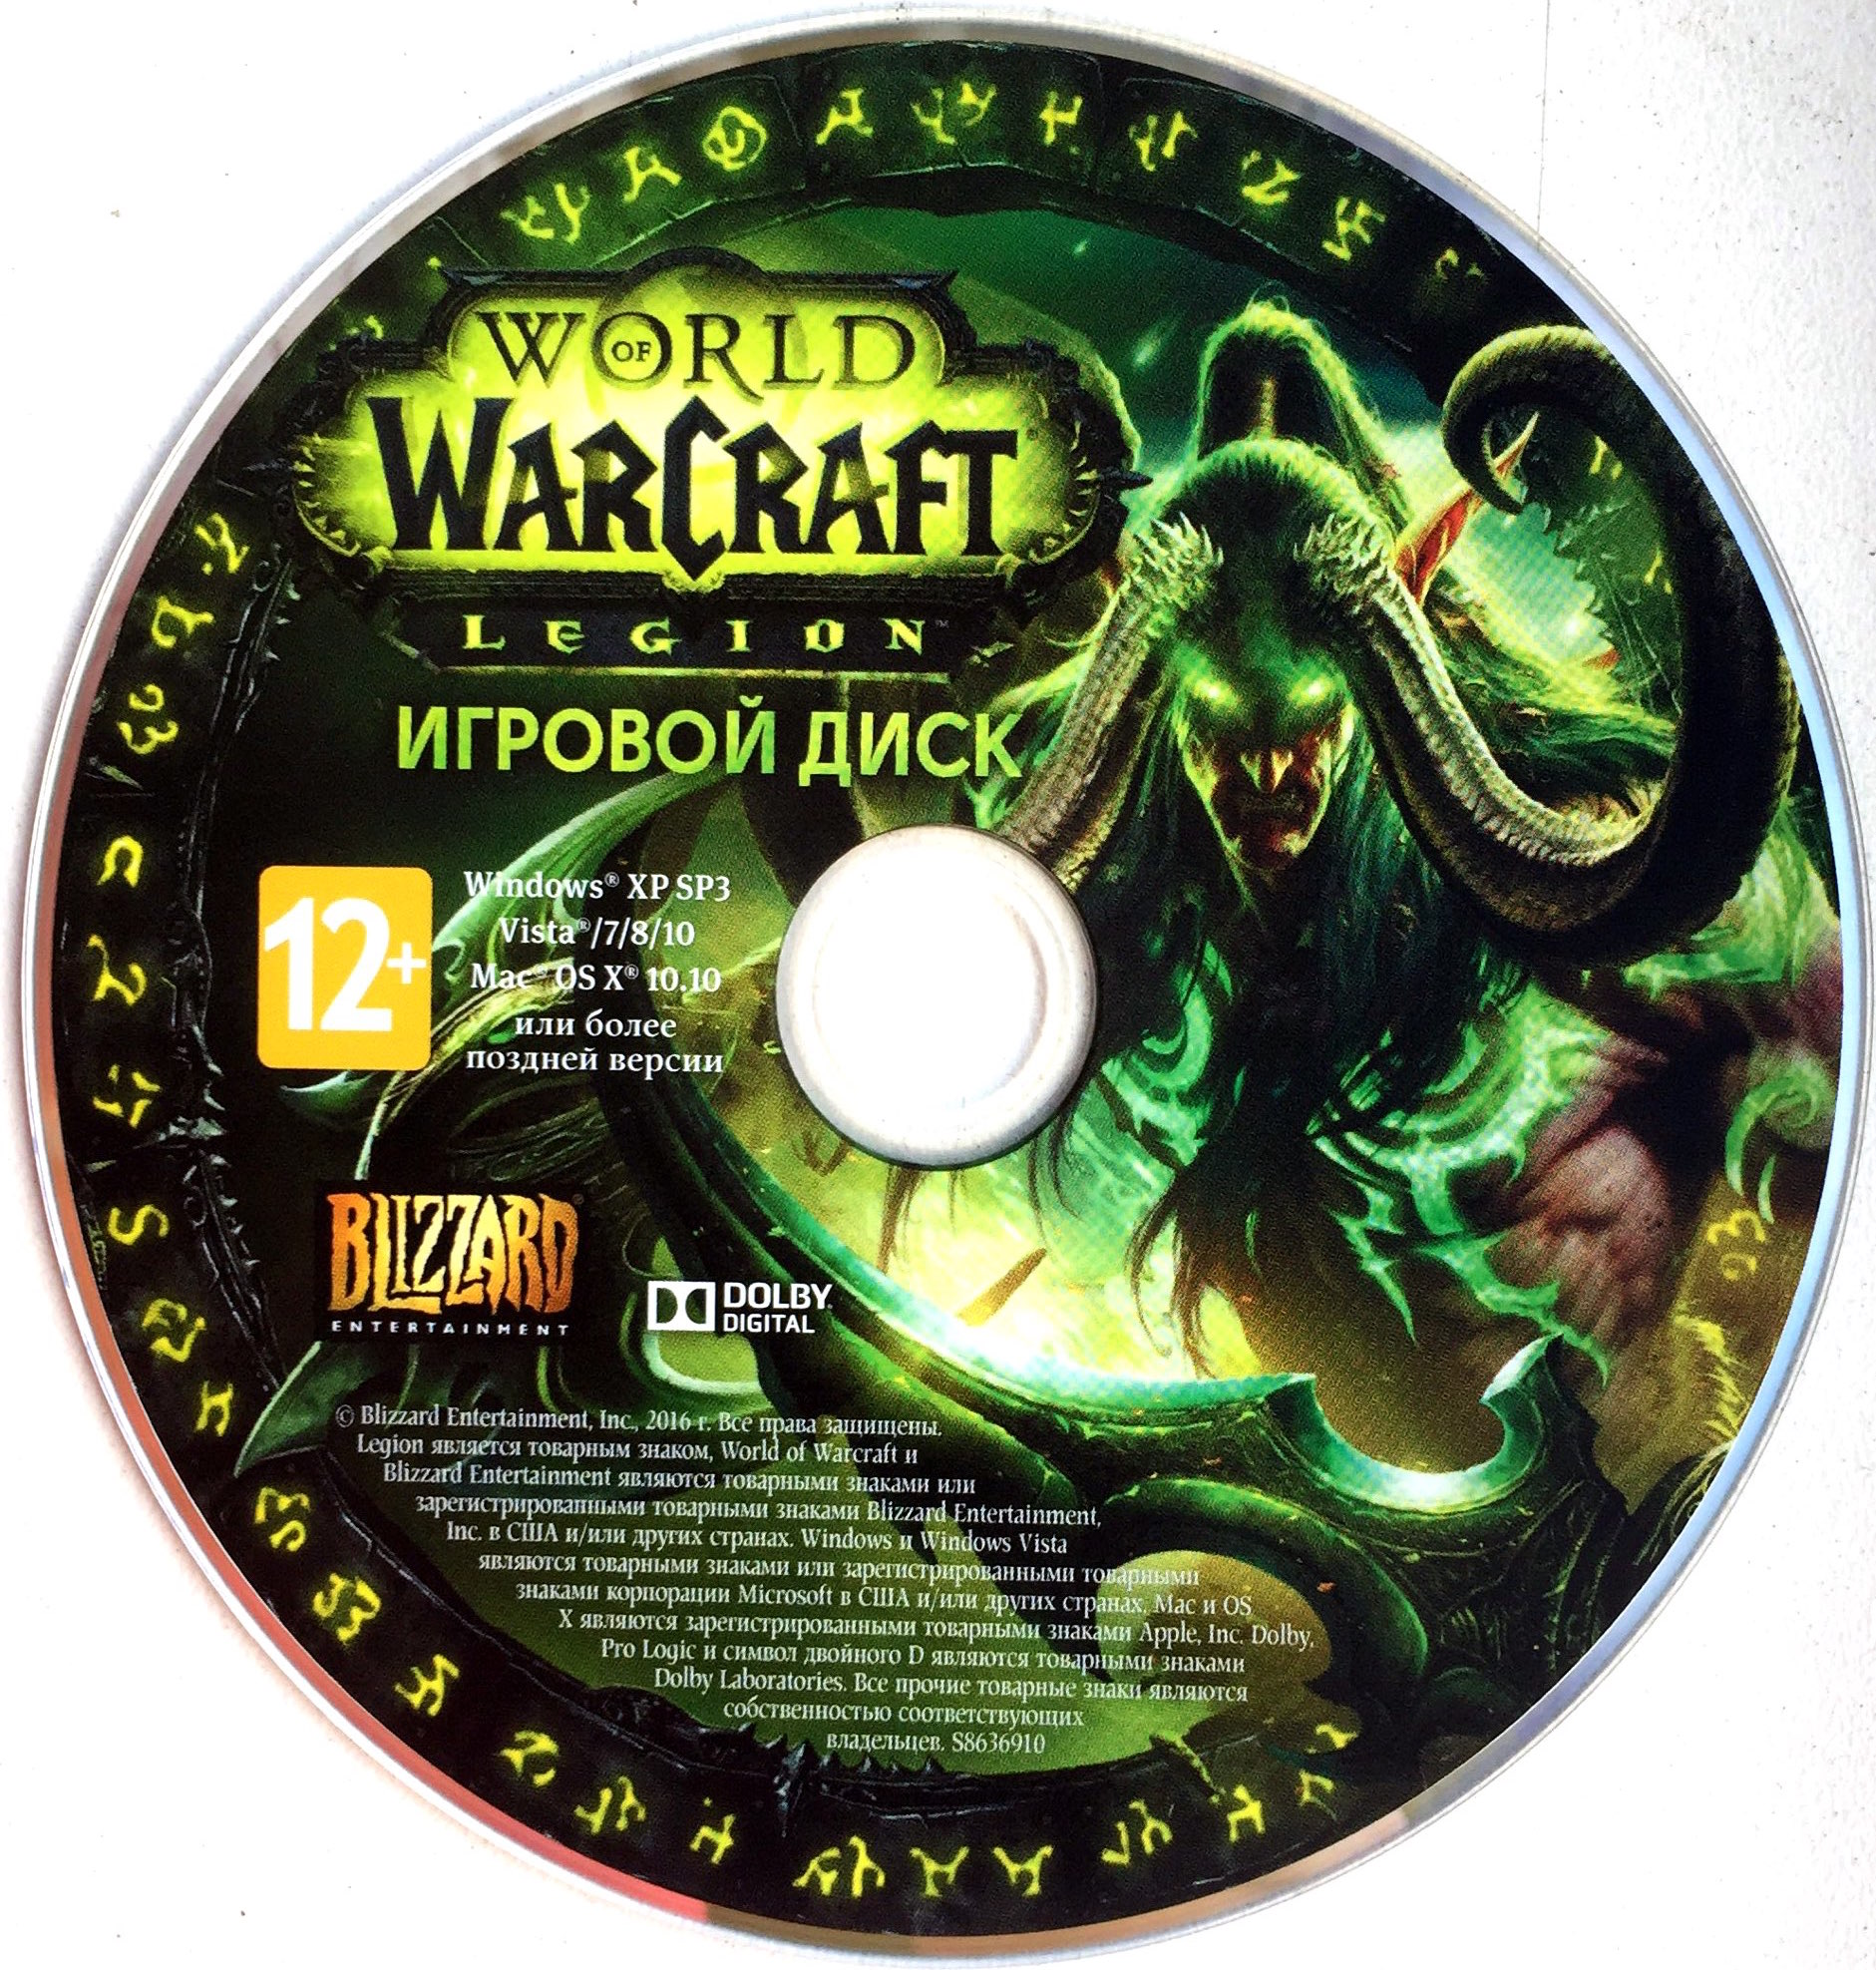 I☮ WORLD OF WARCRAFT LEGION + 100LVL RU